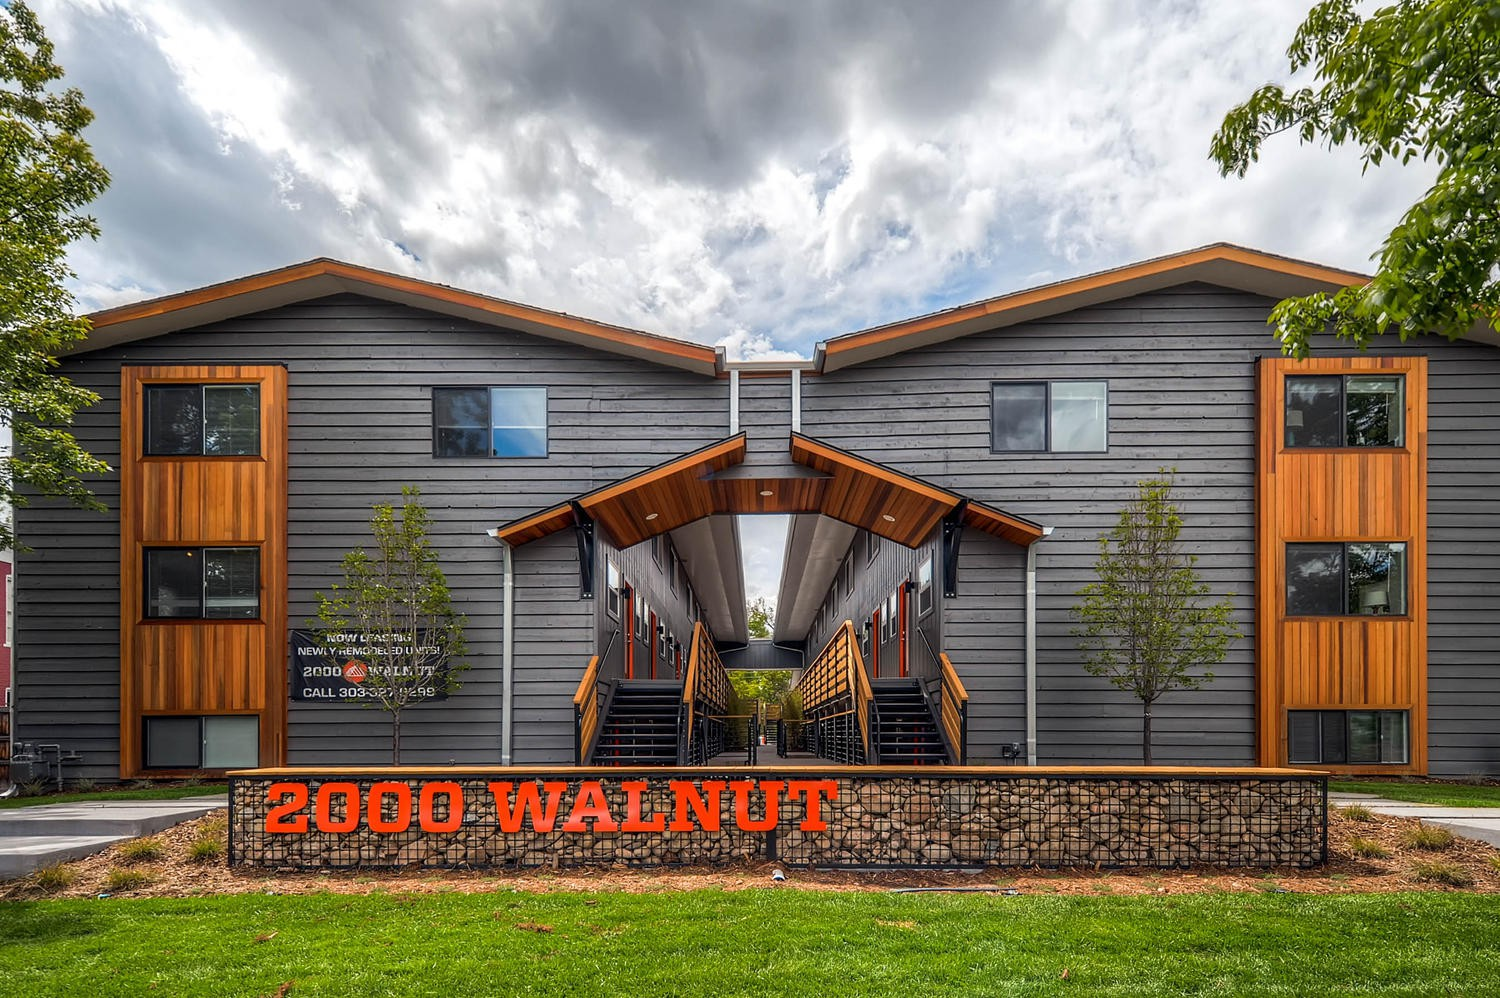 Apartments Near Colorado 2000 Walnut for University of Colorado at Boulder Students in Boulder, CO